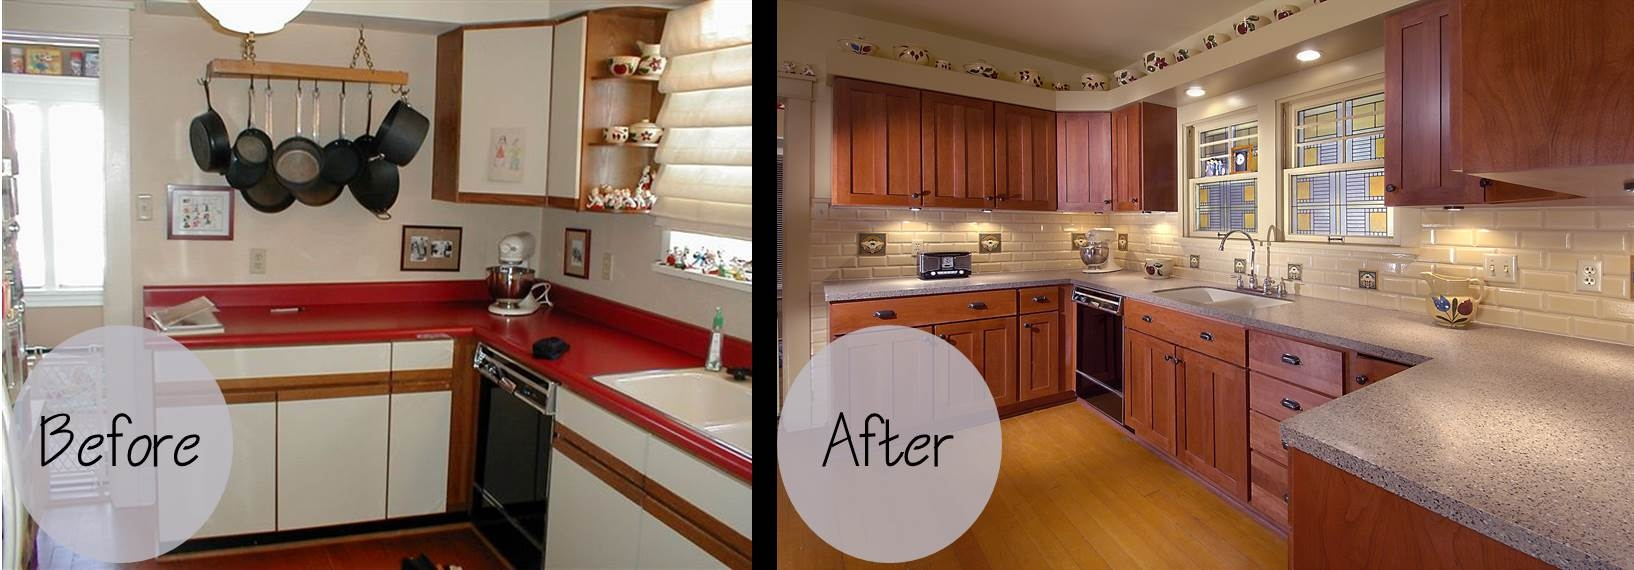 Permalink to Refacing Old Kitchen Cabinets Before And After